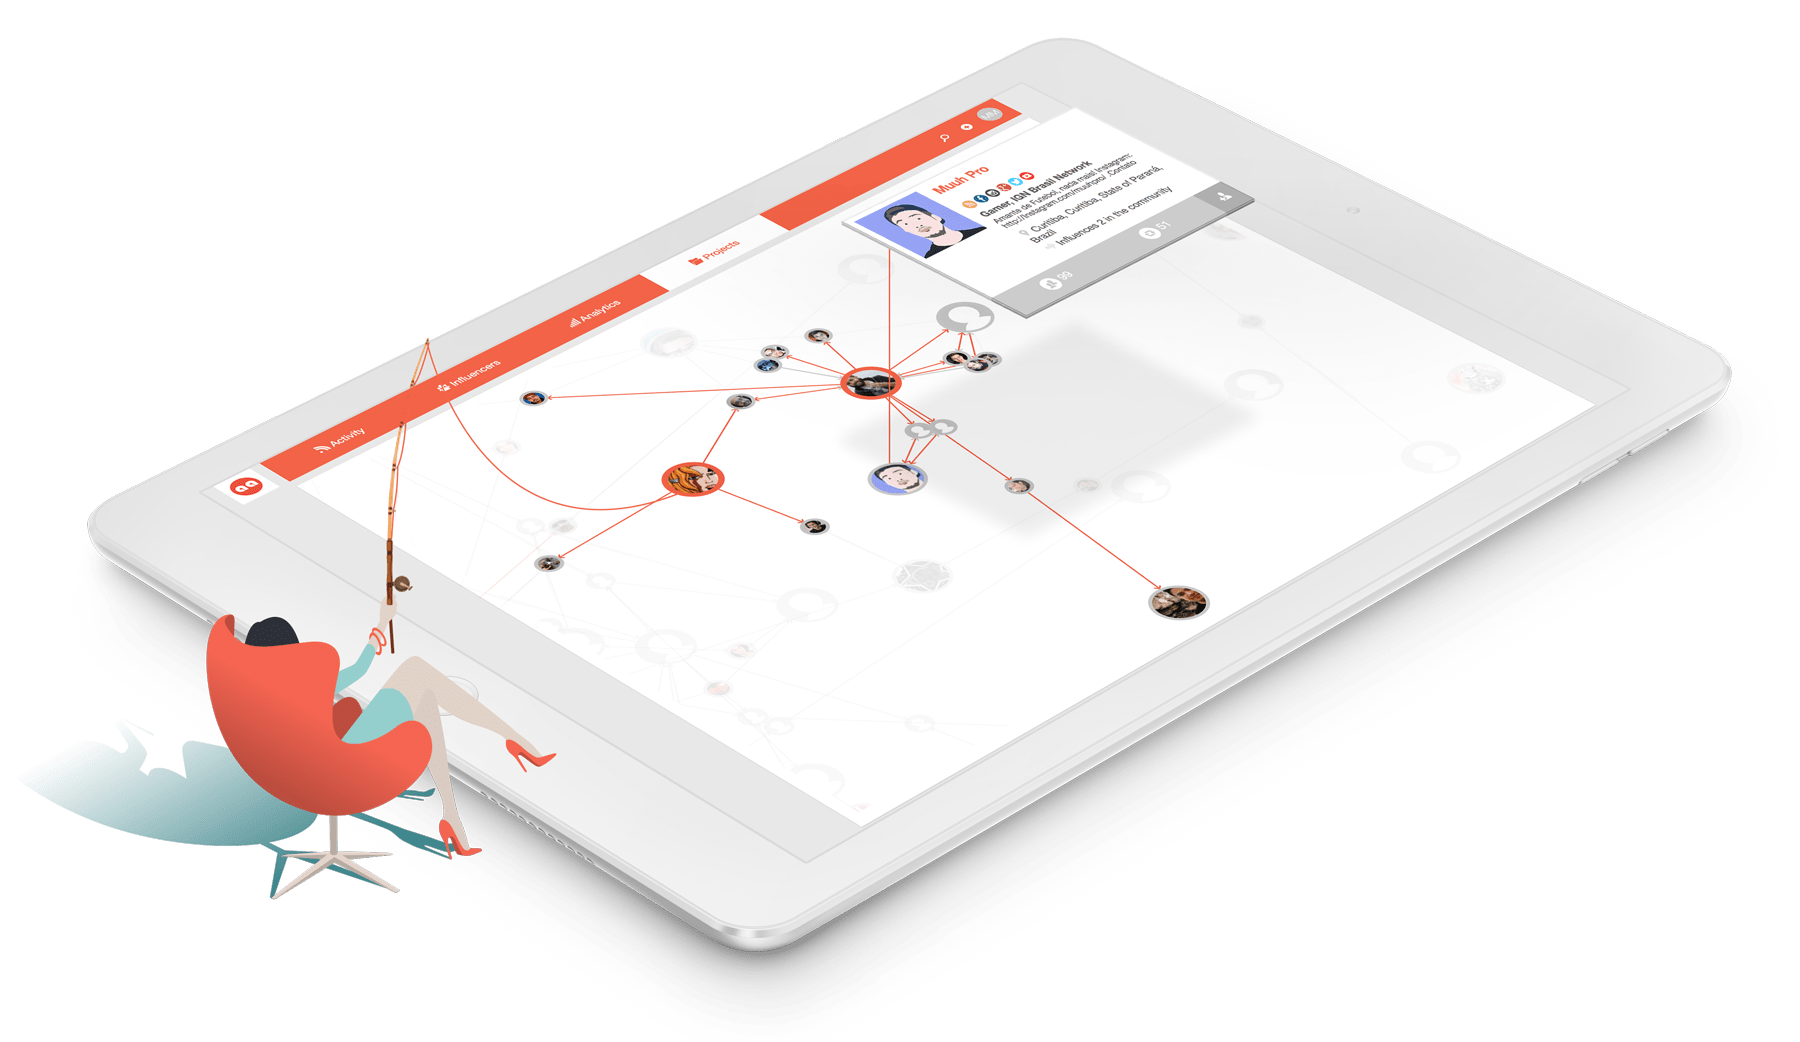 Influencer map enables you to grow your global network on Traackr app